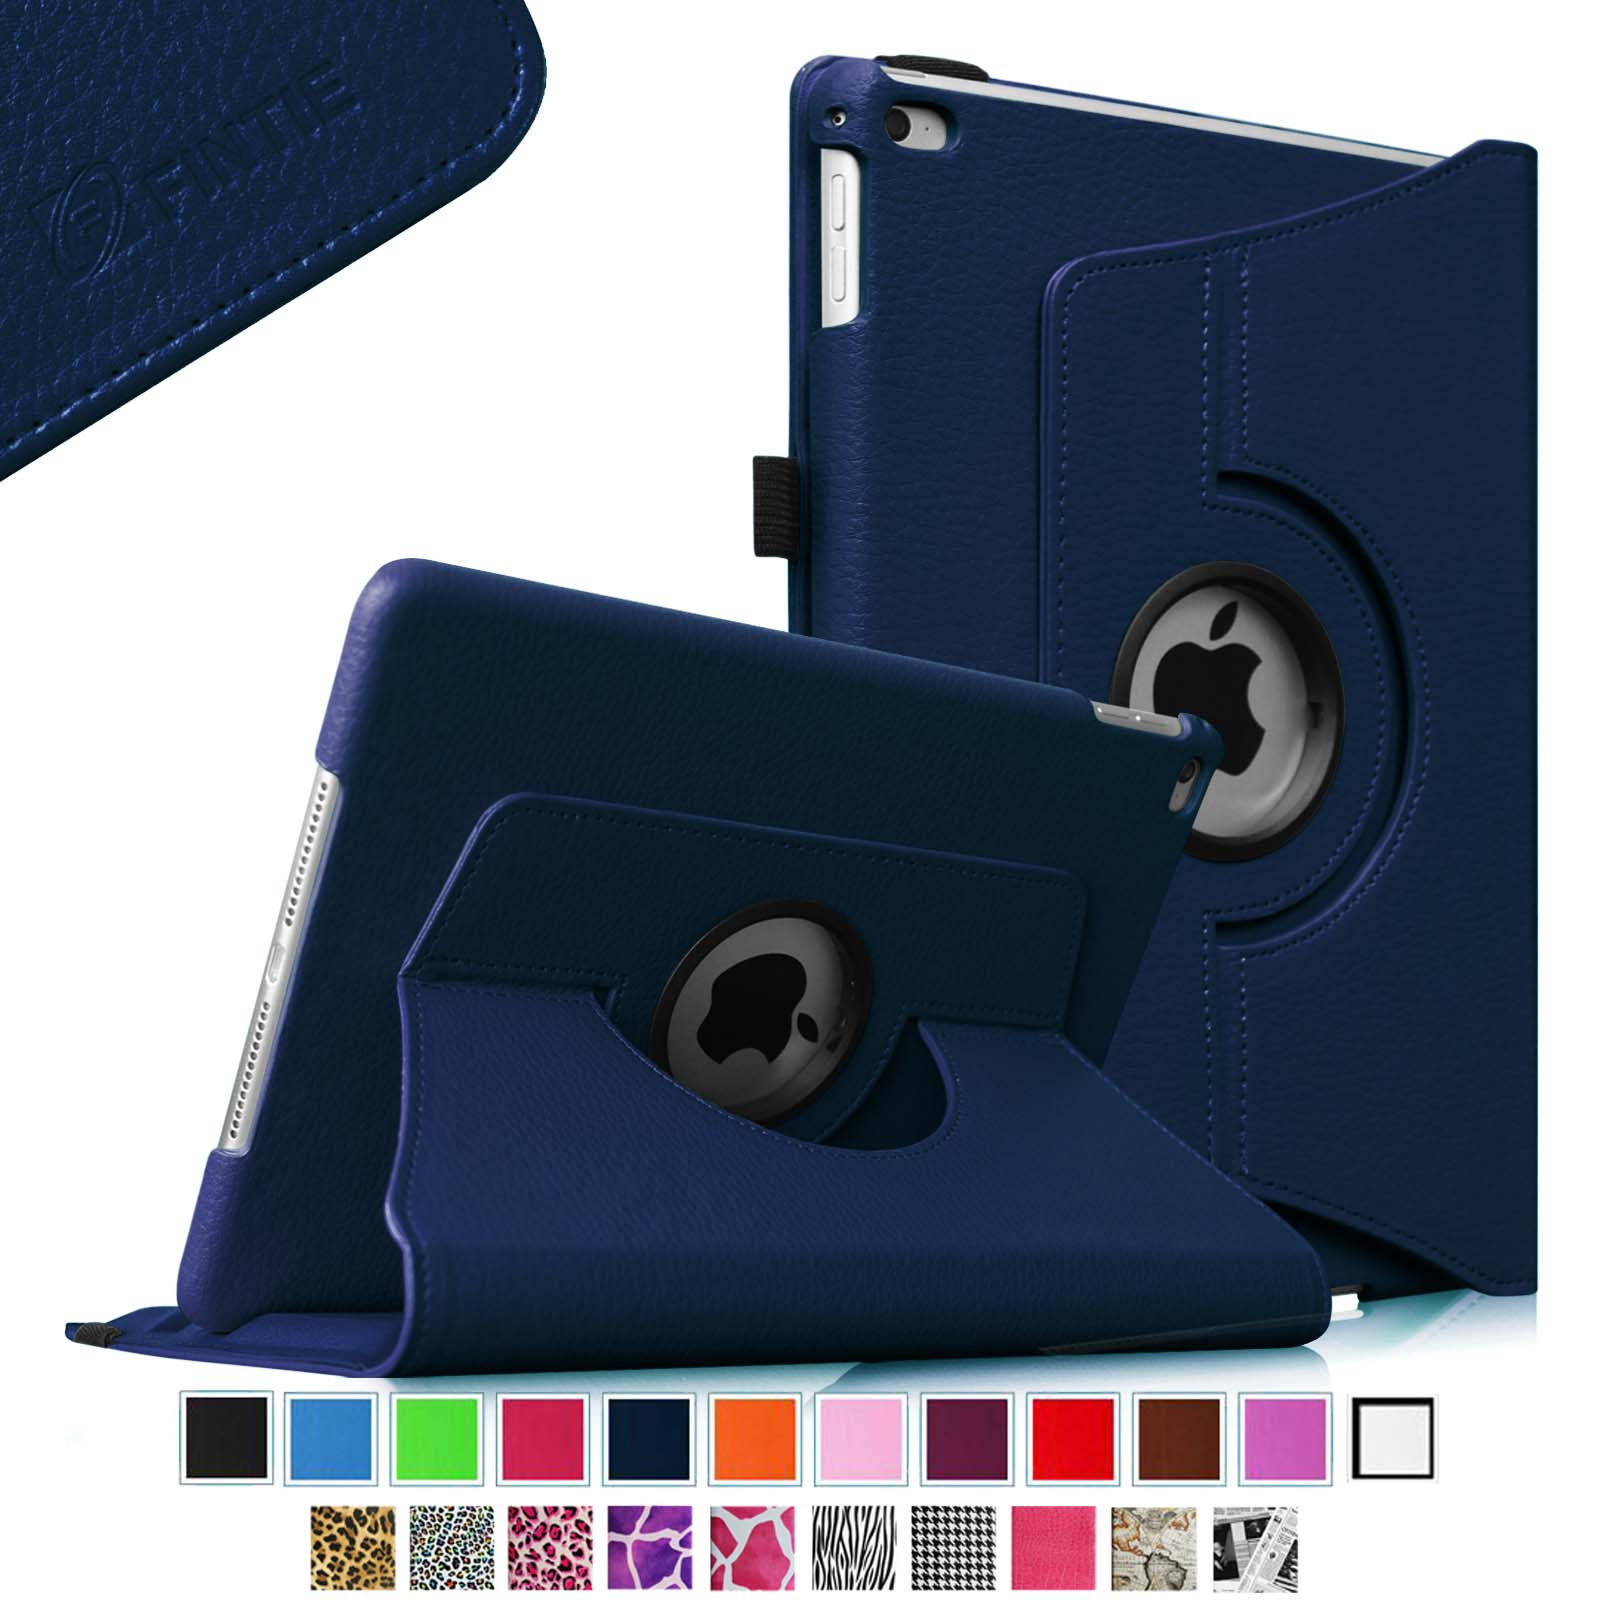 Fintie iPad Air 2 Case - 360 Degree Rotating Stand Cover Auto Sleep / Wake Feature, Navy